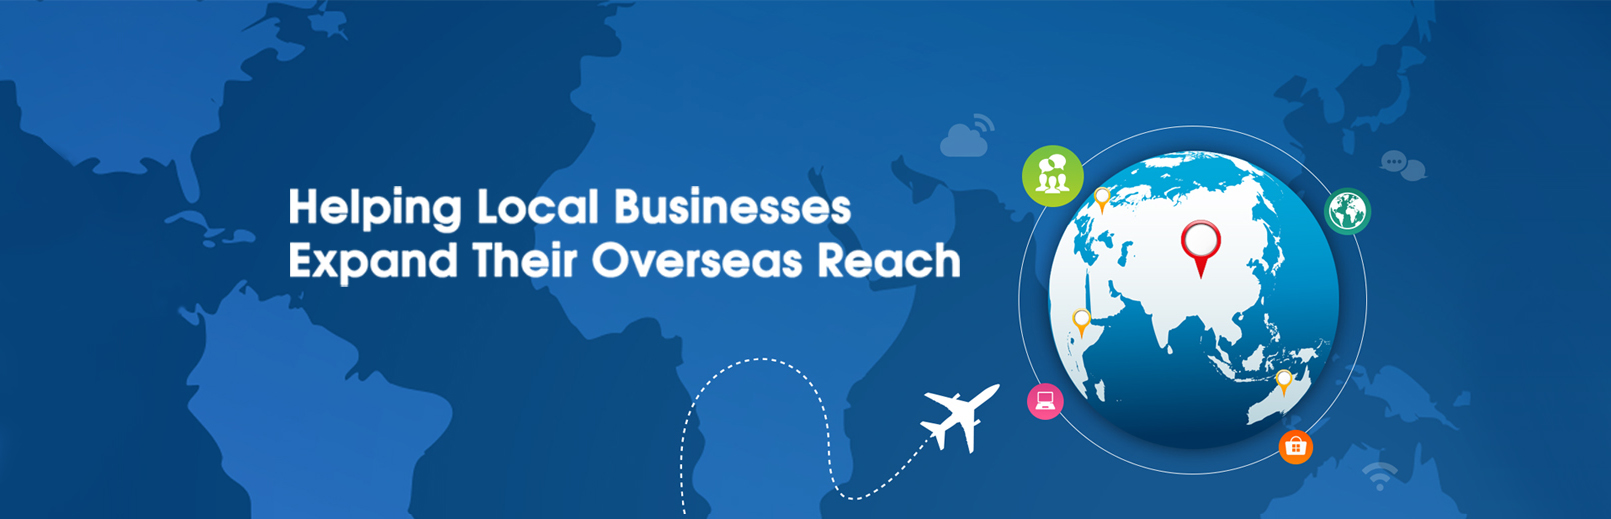 helping-local-businesses-expand-their-overseas-reach